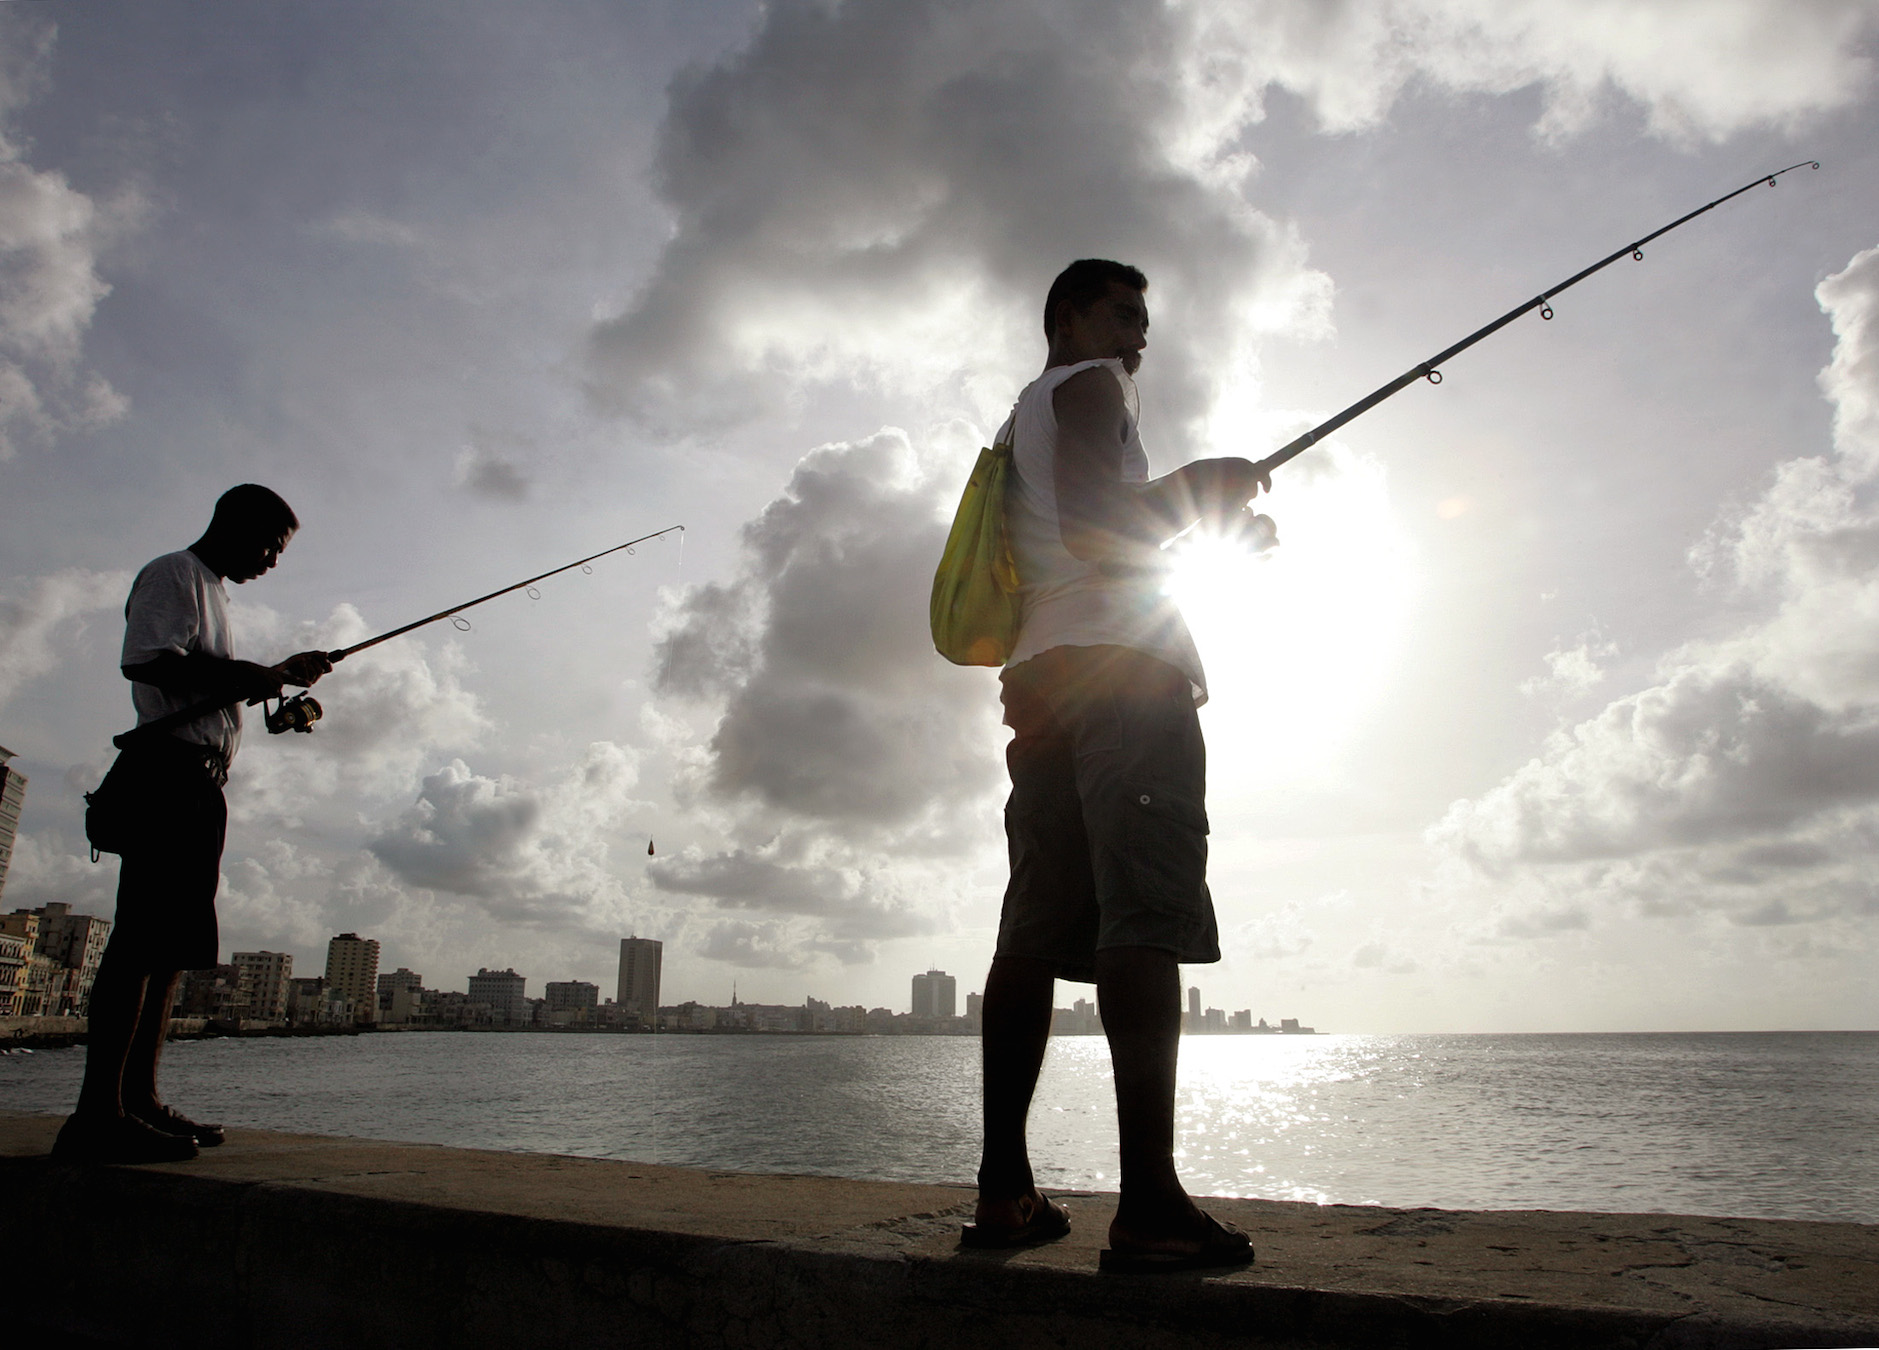 Cubans stand on the Malecon oceanfront as they fish in the glassy-calm waters, in spite of the approaching of Hurricane Ivan, September 10, 2004. Thousands of Cubans are getting ready to be evacuated from the island's southern side, as forecasters predict the worst hurricane in 60 years to hit Cuba could arrive here by Sunday. REUTERS/Claudia Daut NO RIGHTS CLEARANCES OR PERMISSIONS ARE REQUIRED FOR THIS IMAGE  CD - RTRAHB1